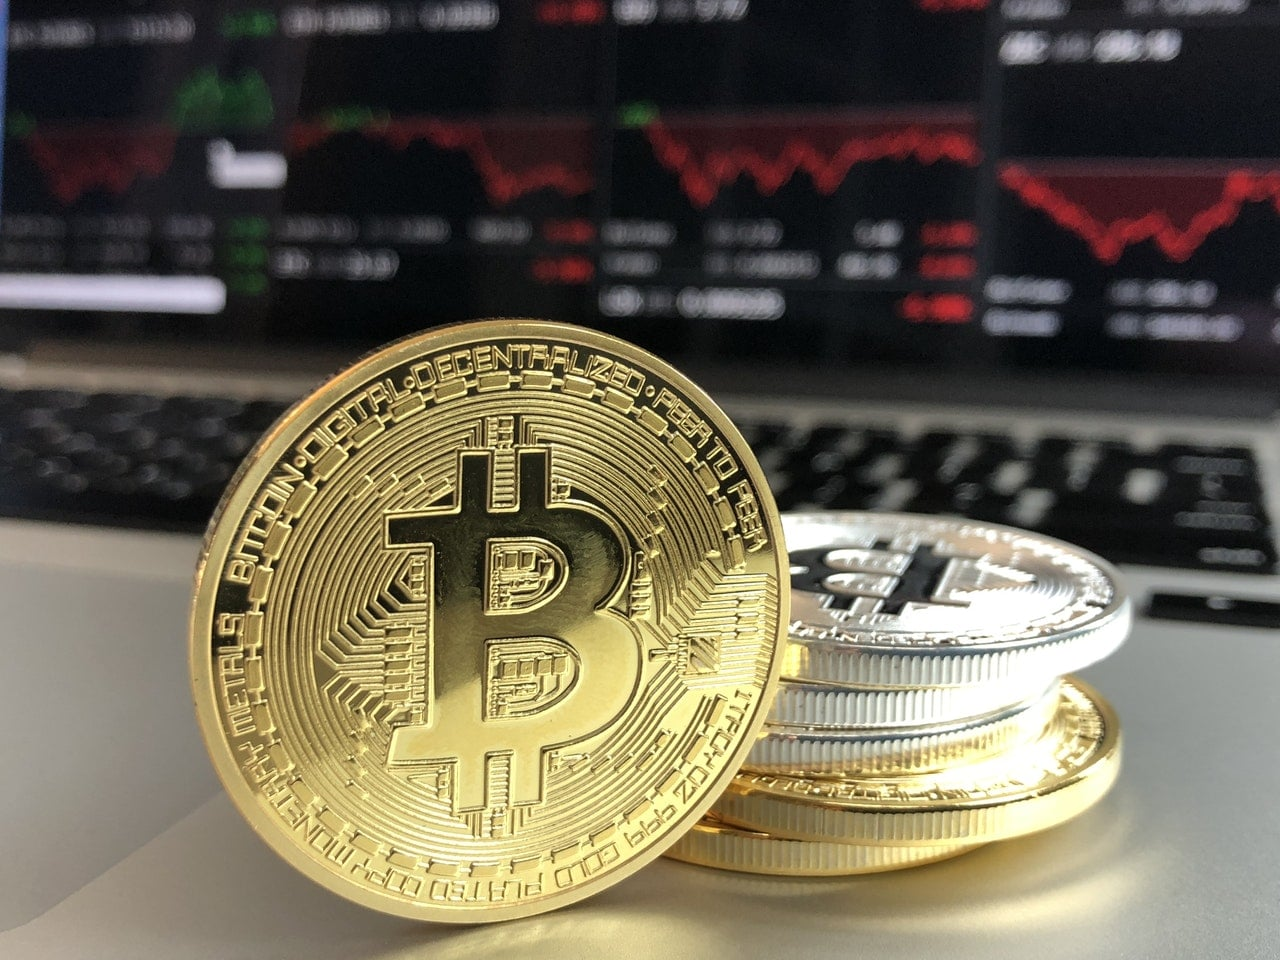 Bitcoin Cryptocurrency Speculators Article Image